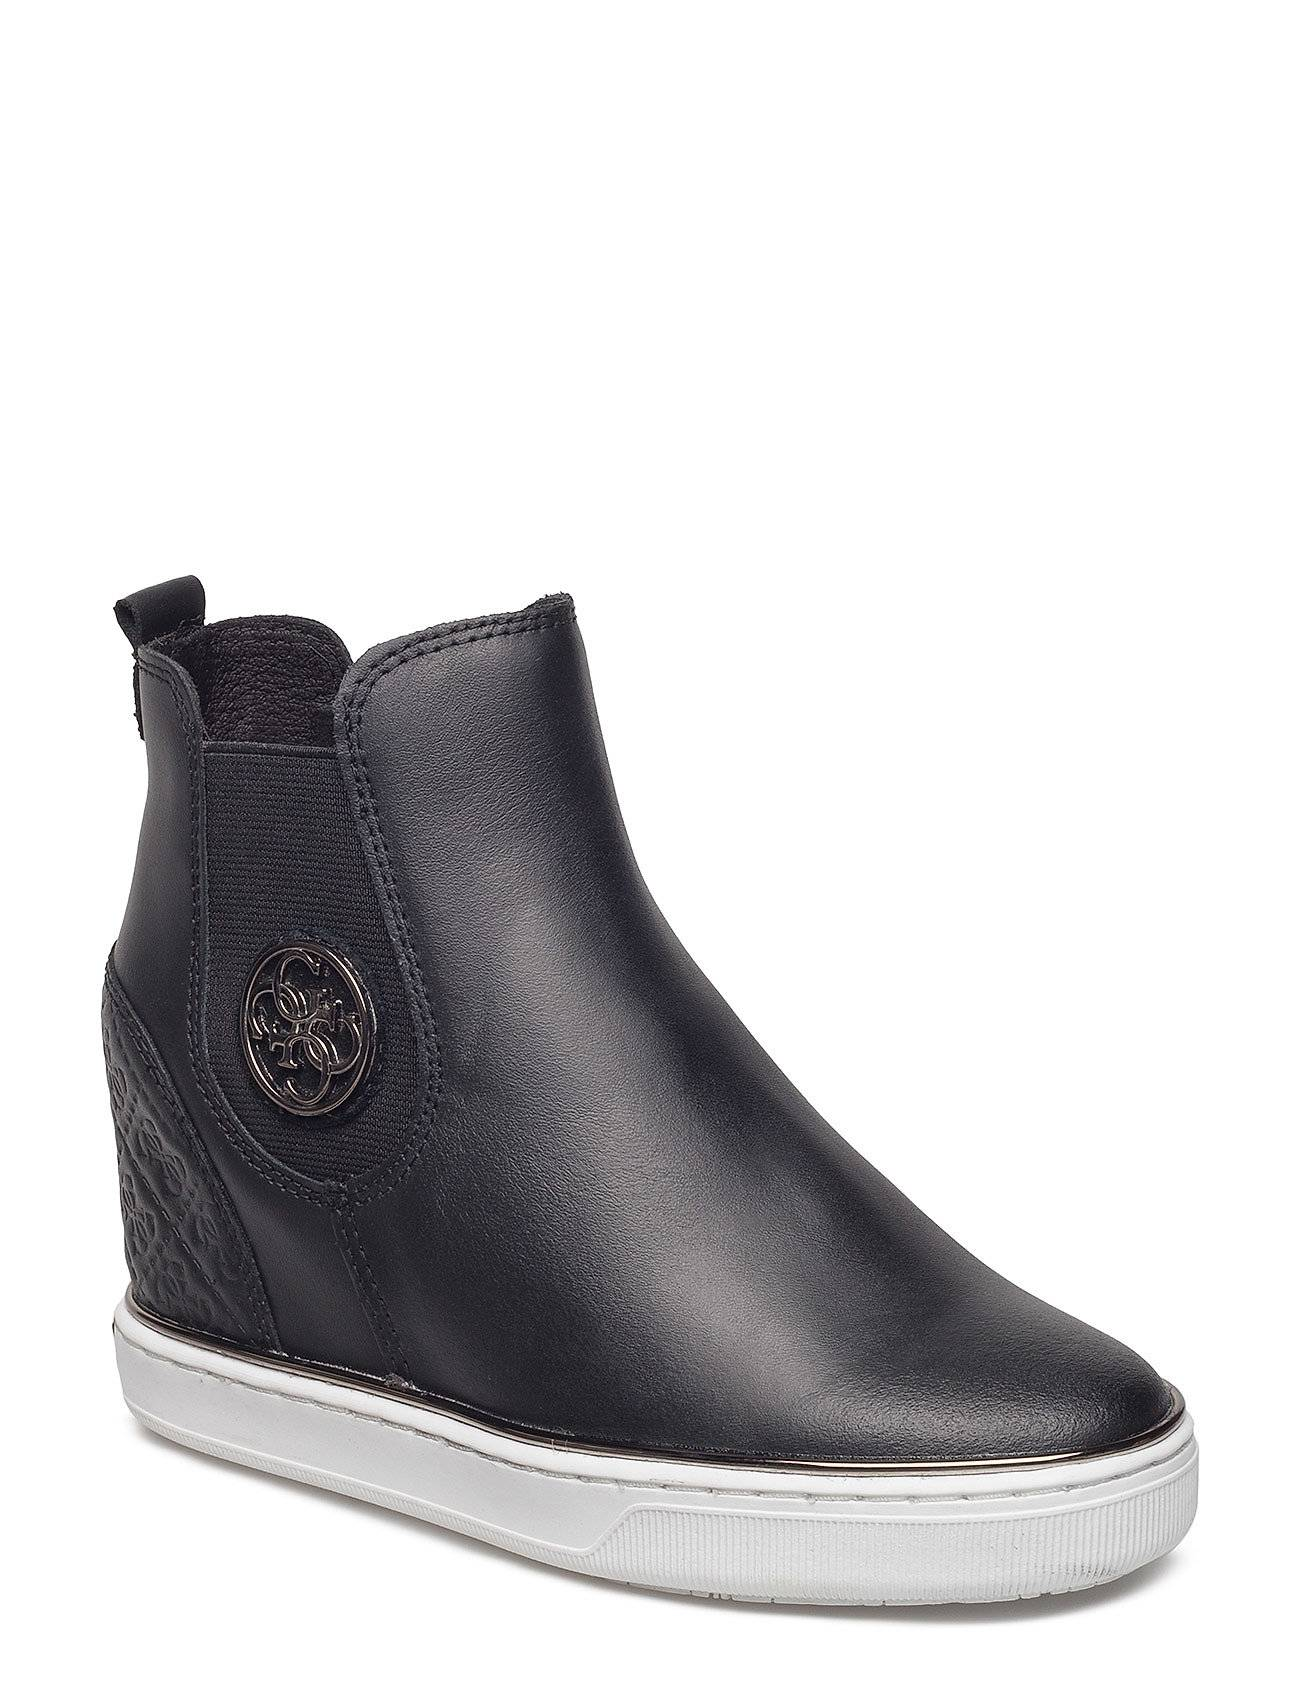 GUESS Freda Leather Wedge Sneaker